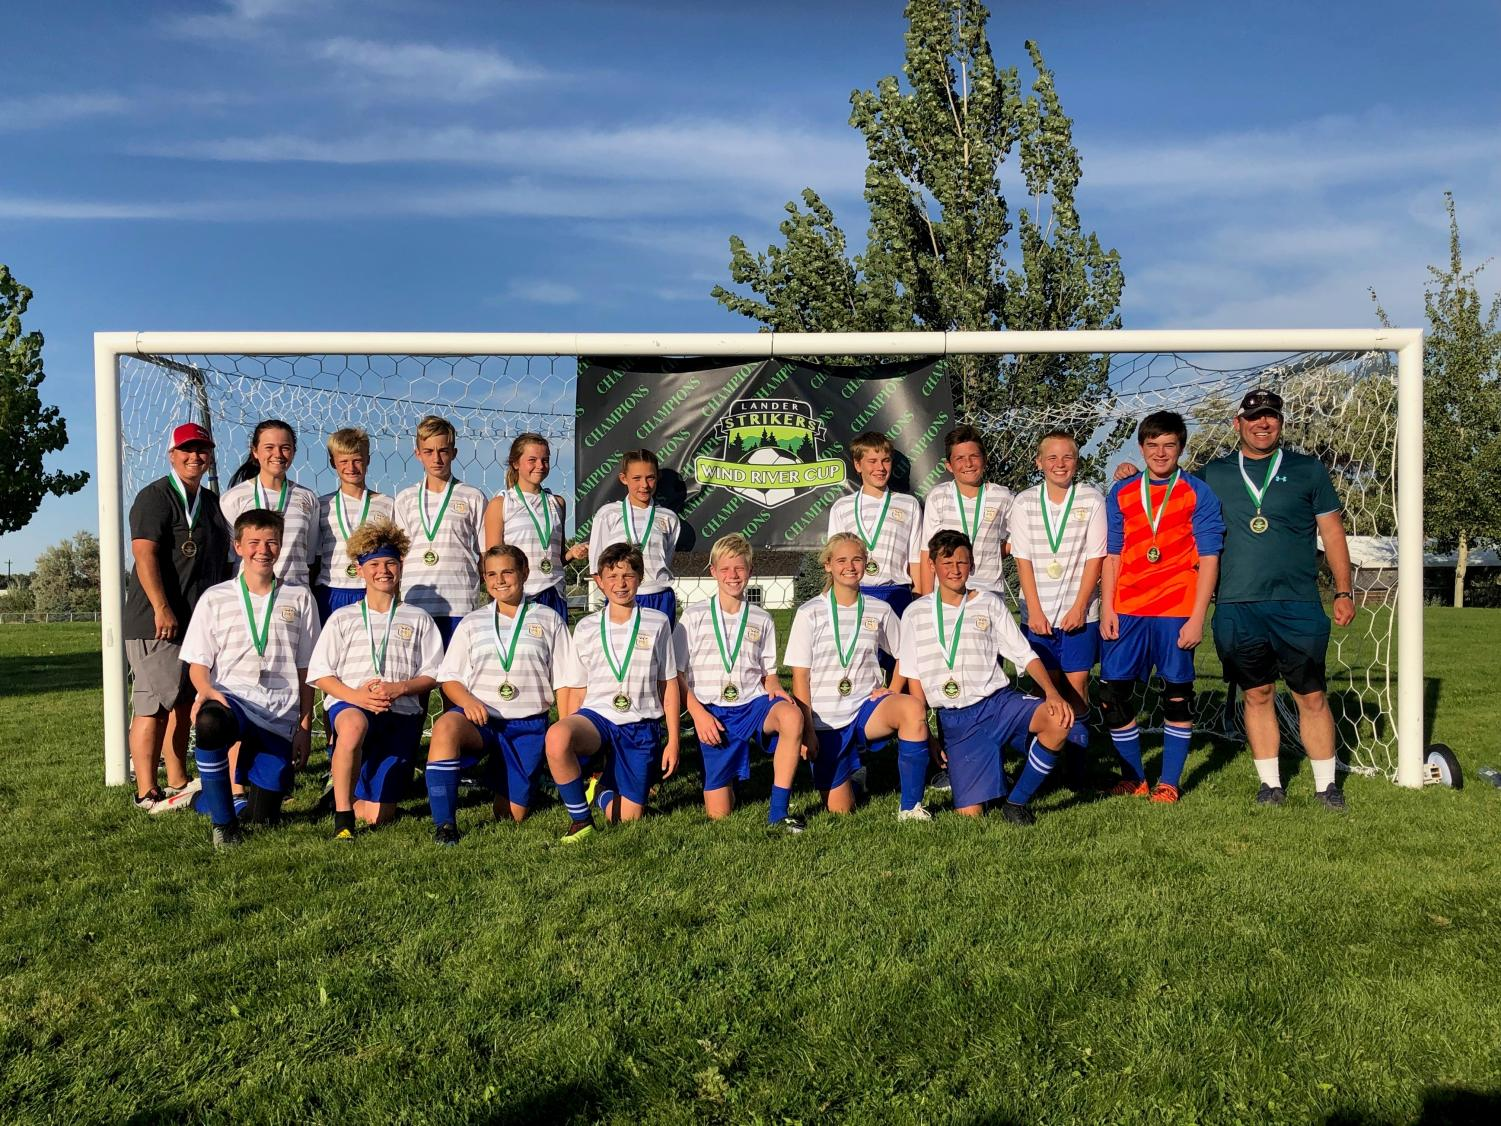 The U16 Heart Mountain Soccer team pose for a picture with their medals after winning a soccer tournament in Lander.